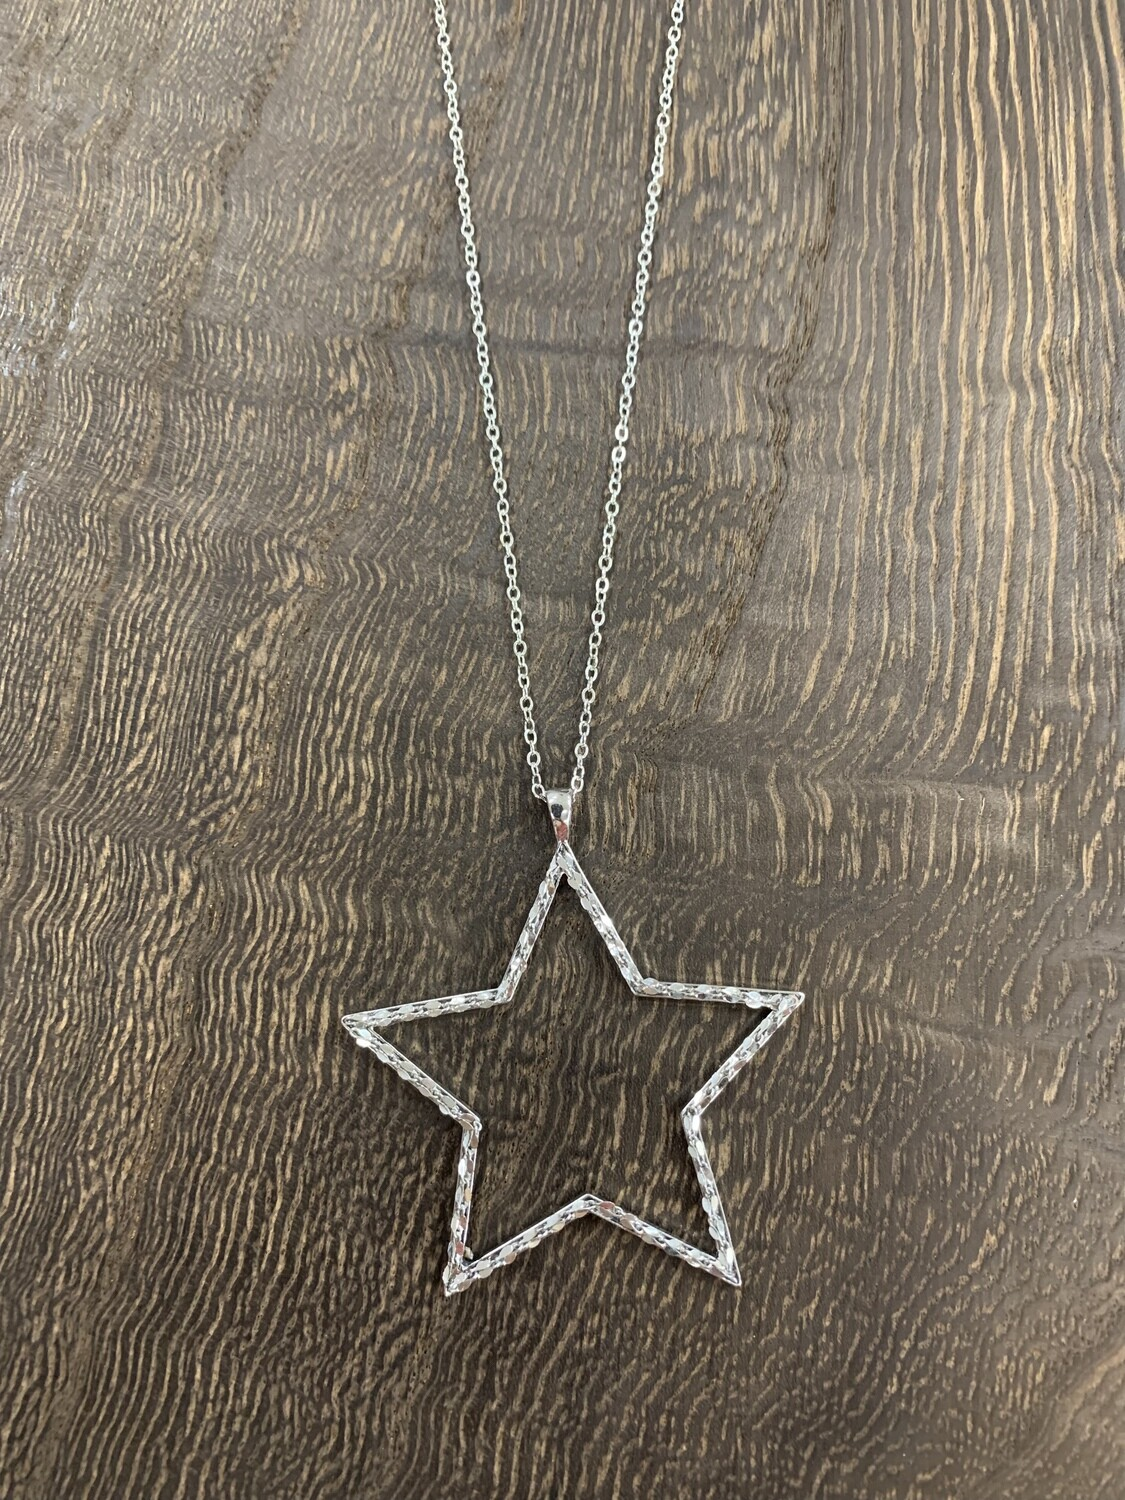 Long Silver Basic Star Outline Necklace